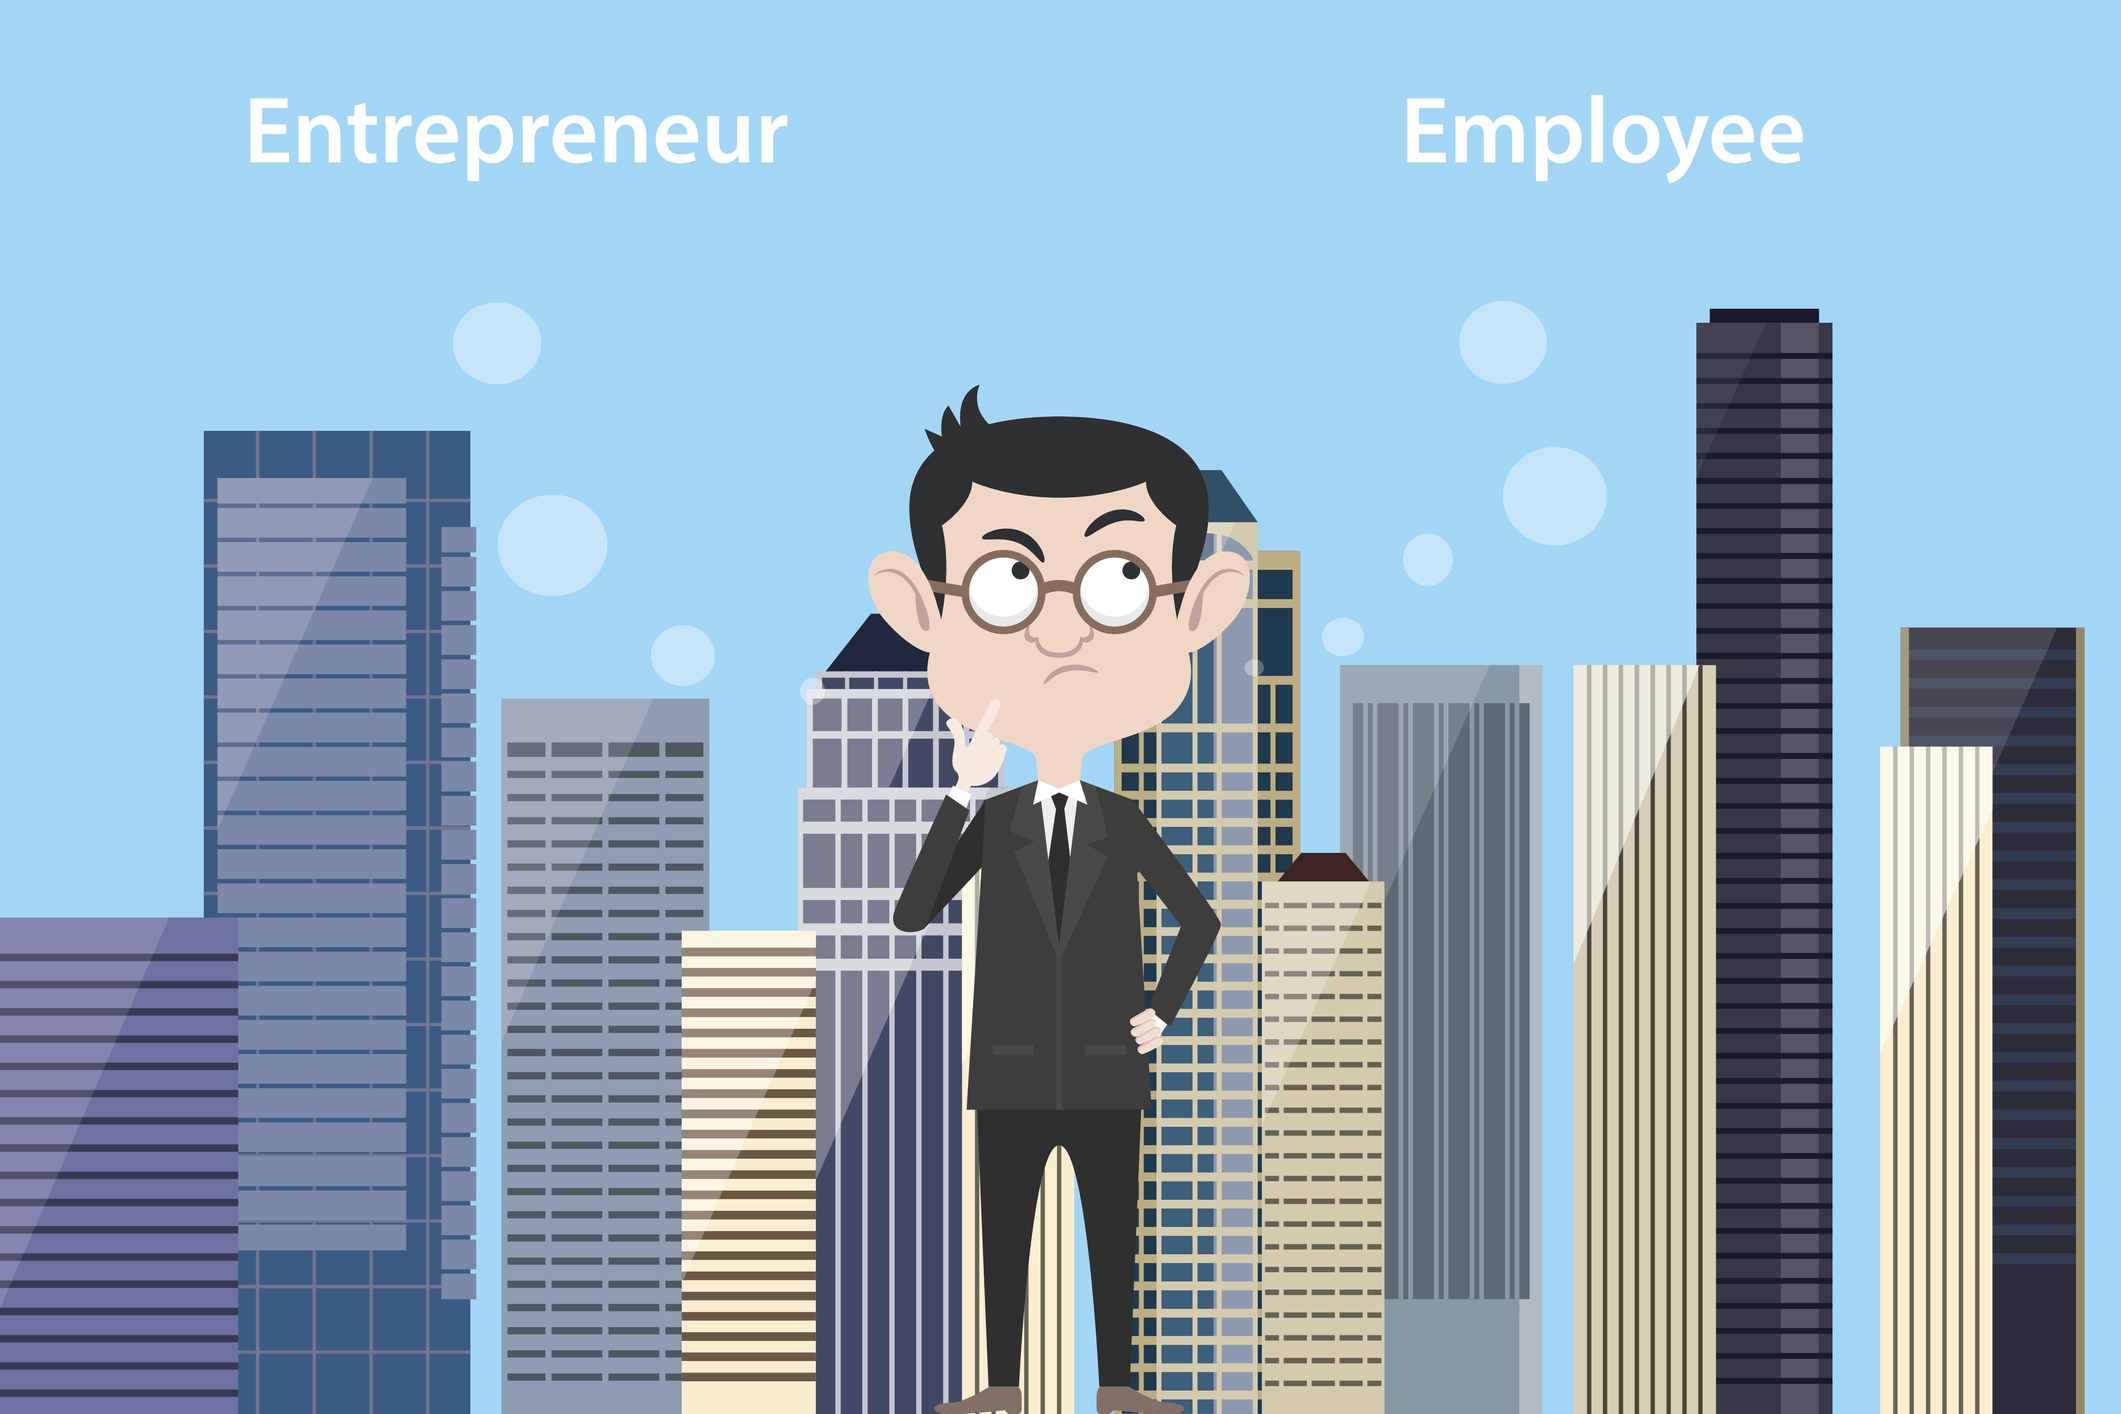 Launching a Start-up Business – When You Should vs Shouldn't